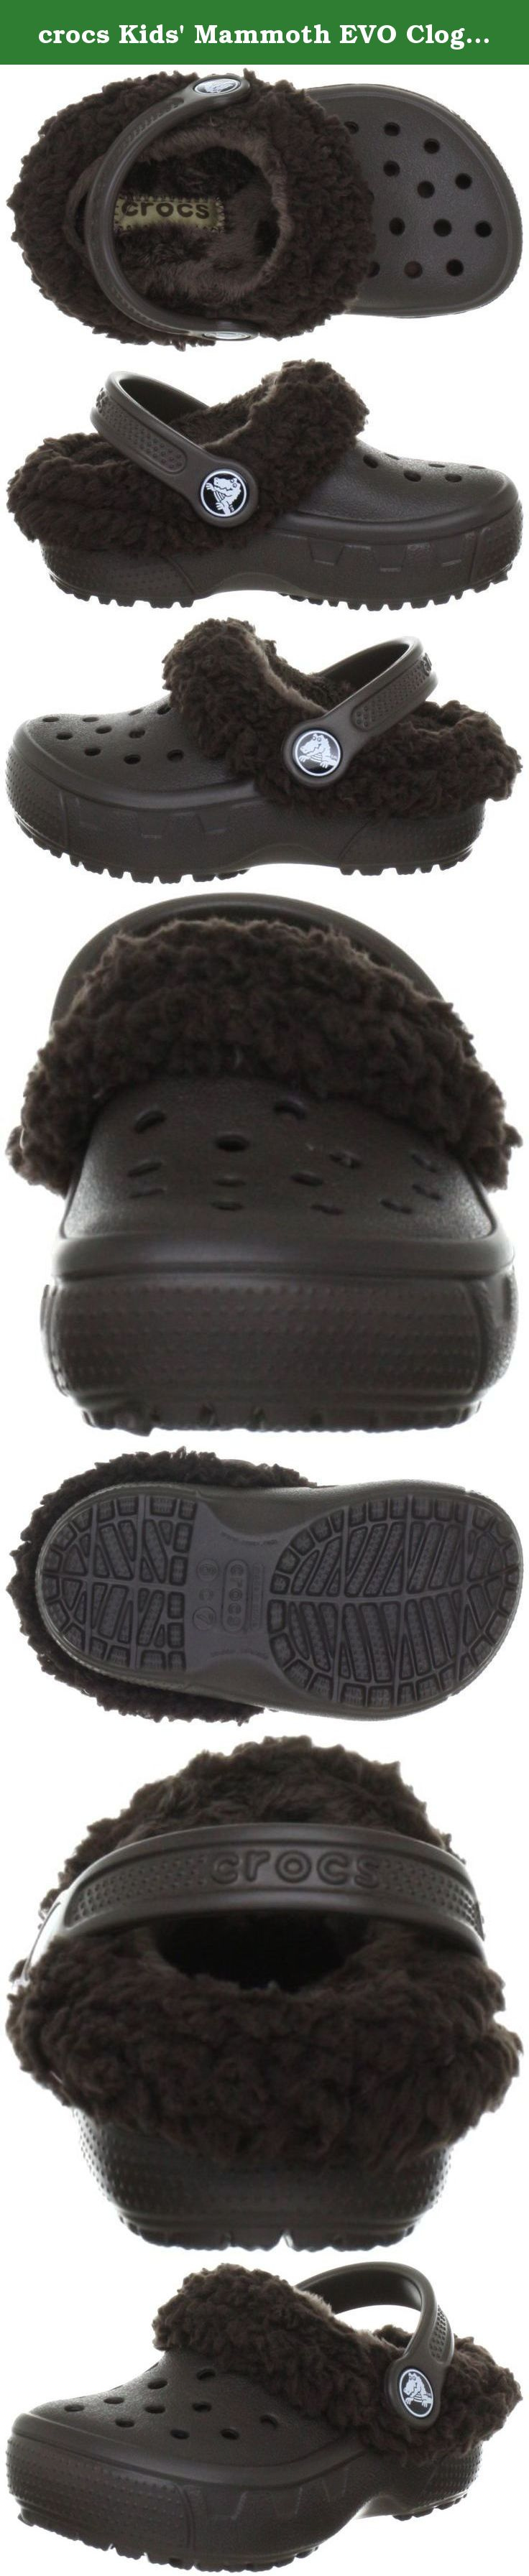 Crocs Mammoth EVO Clog Kids Espresso Espresso Warm lining is removable and washable Heel cup provides a more secure fit Heel cup